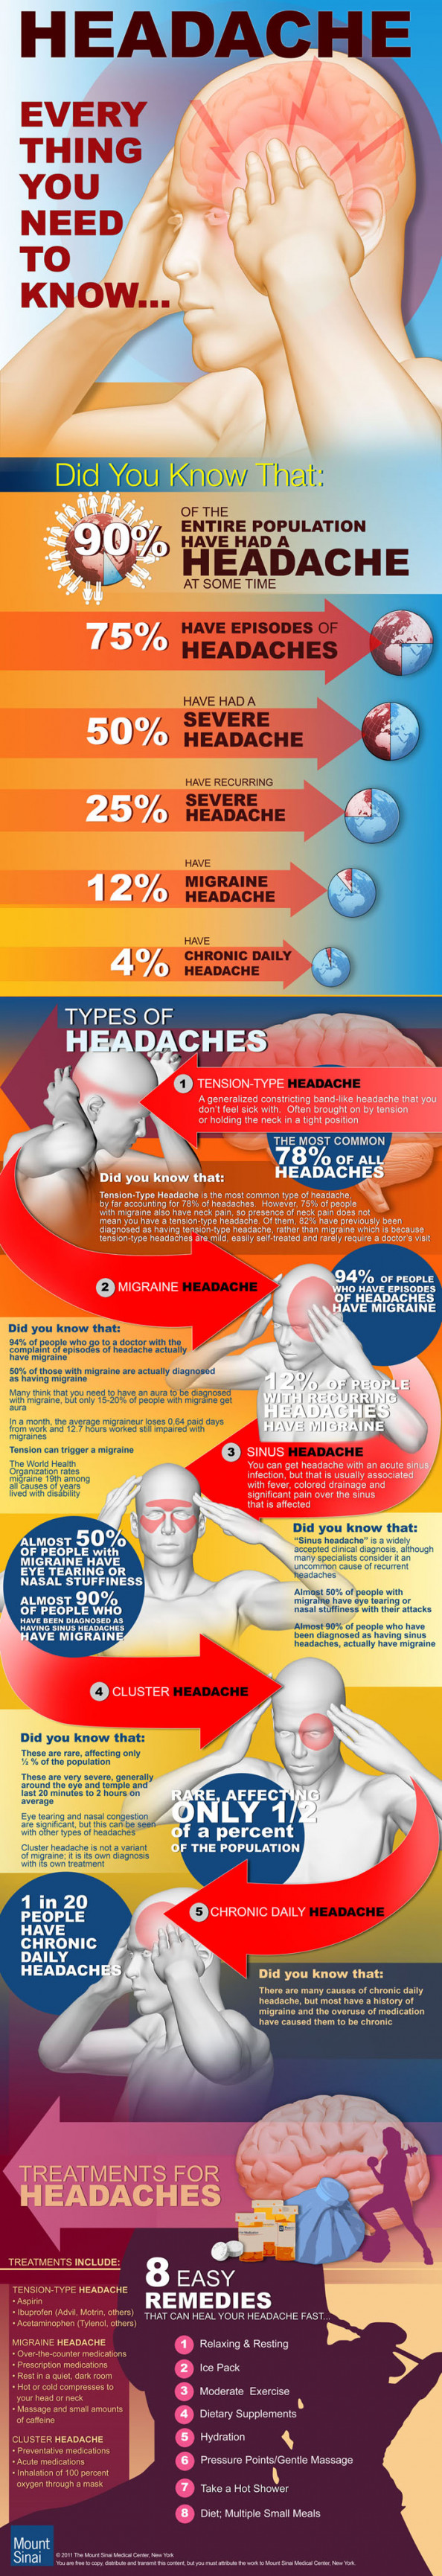 Headache: Everything you Need to Know Infographic